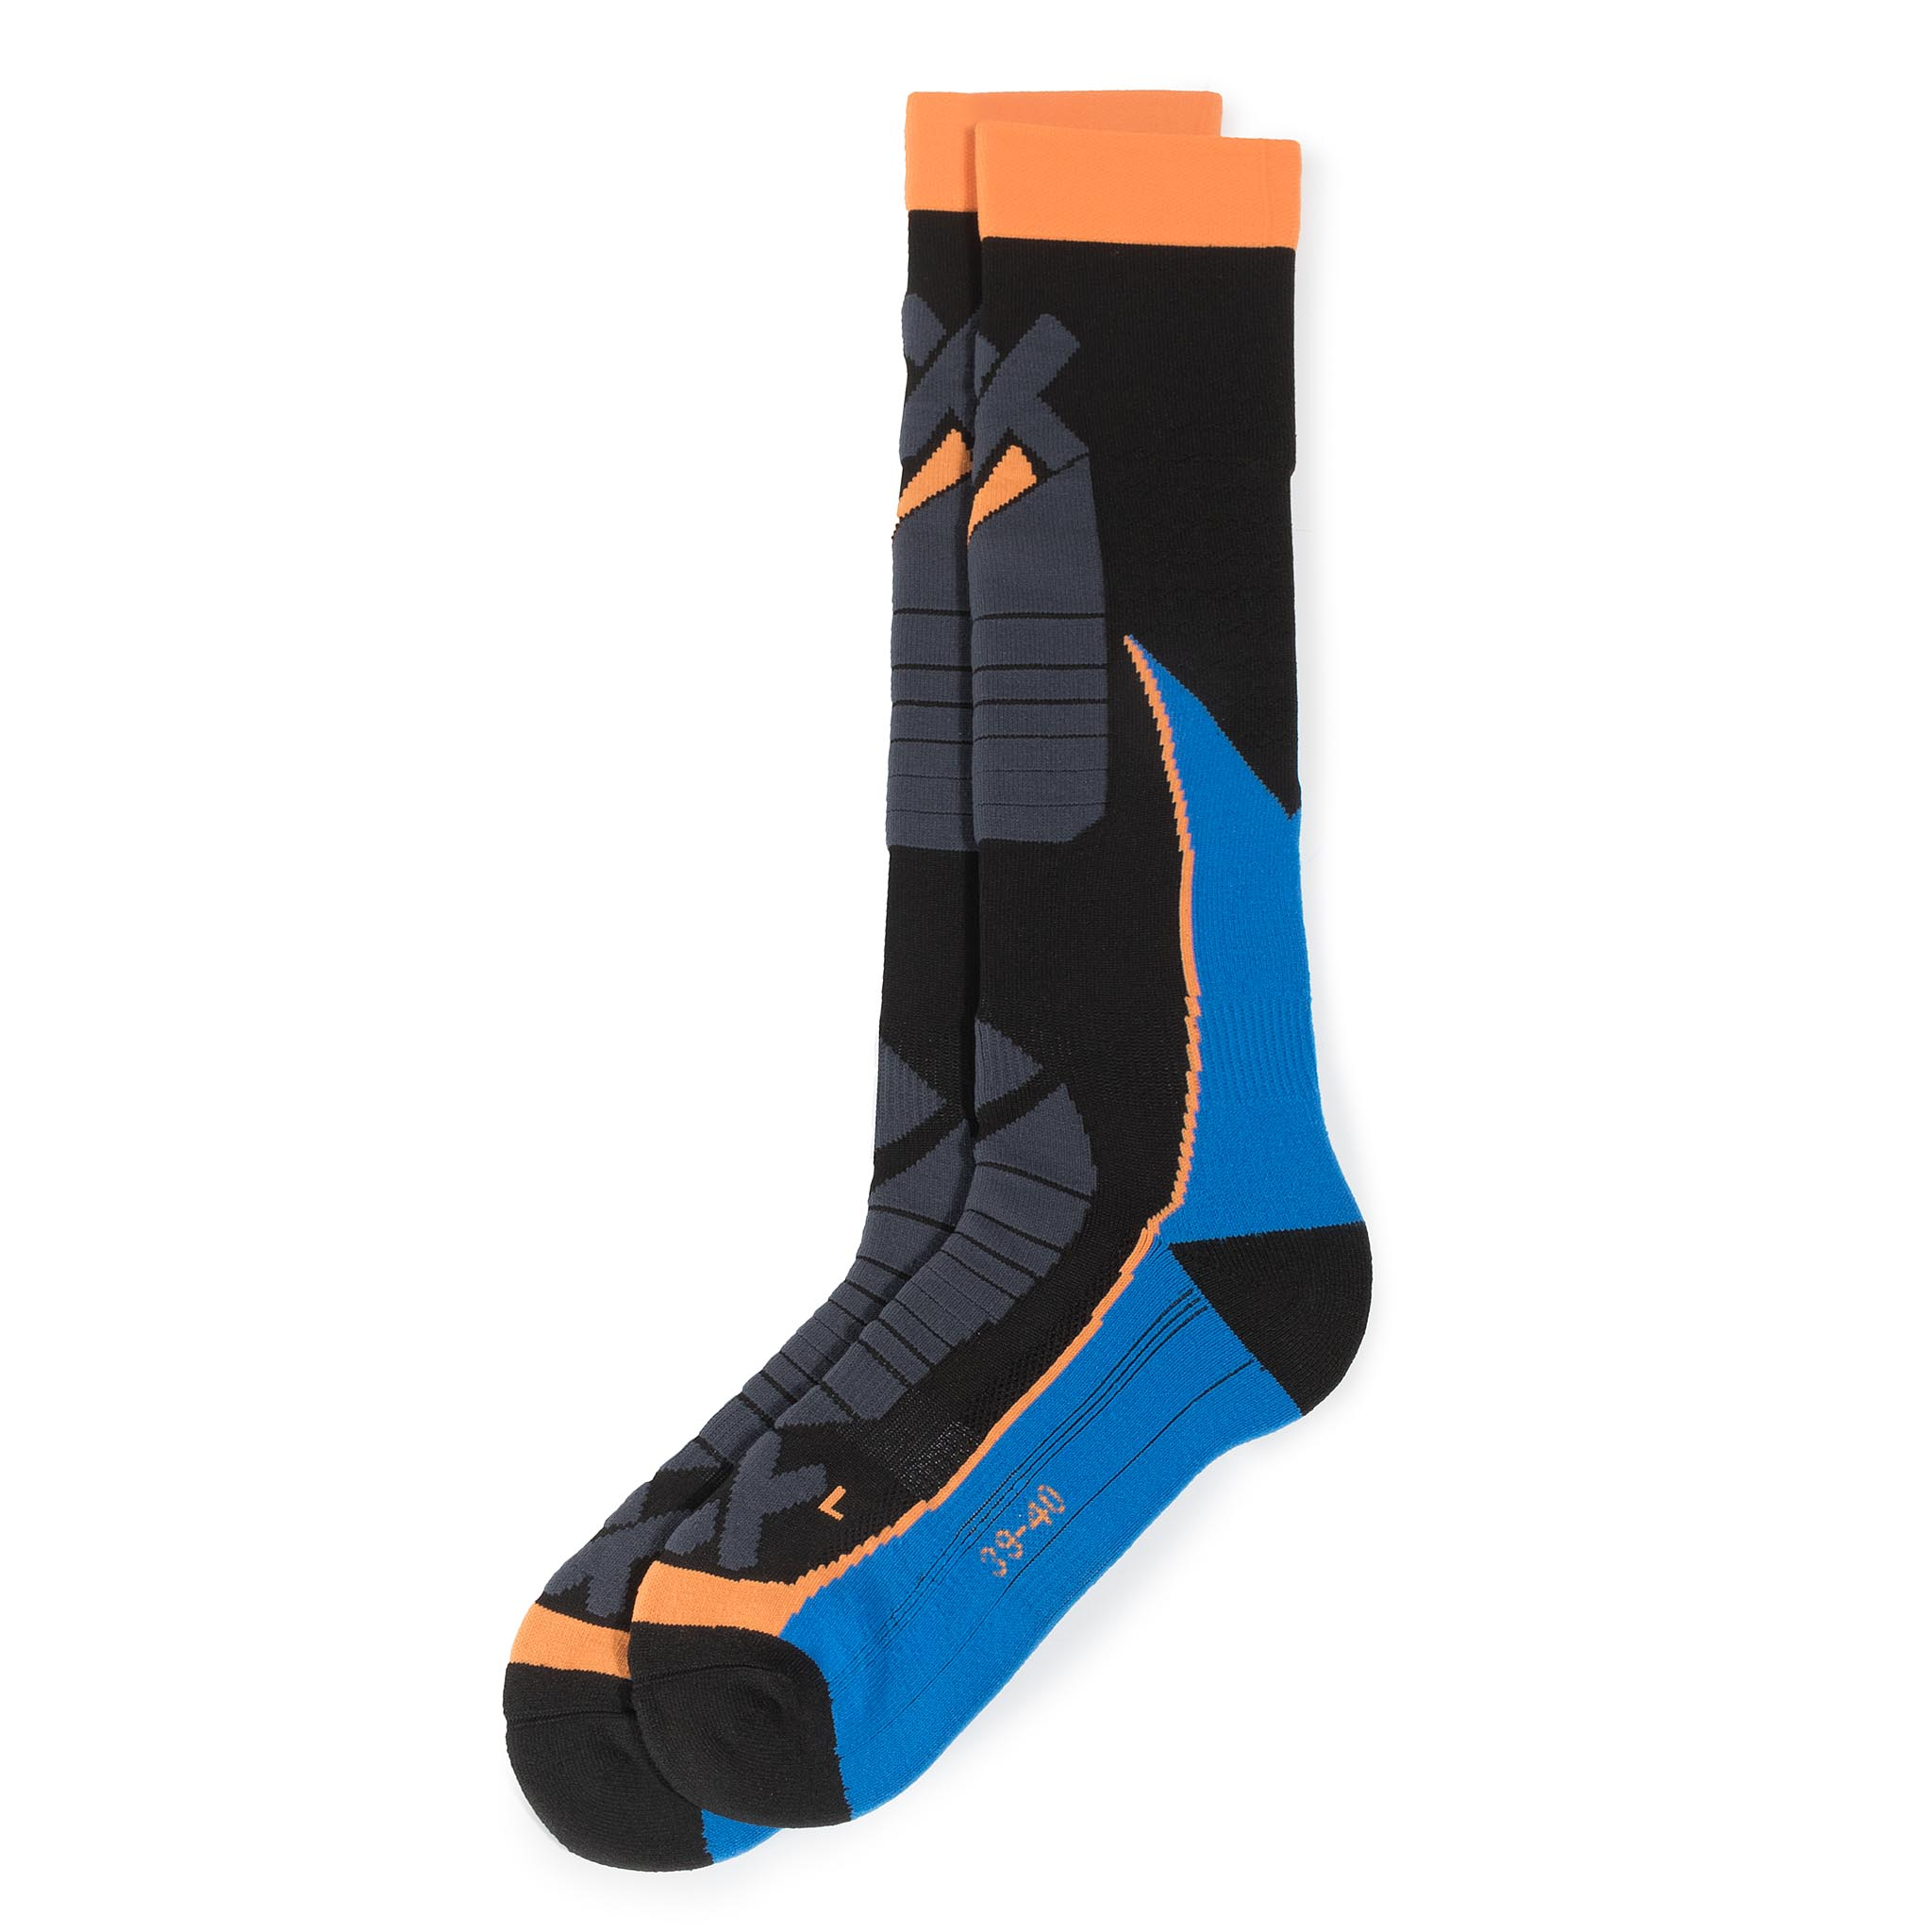 Șosete Înalte Unisex Völkl - 3655 Race Black/Orange 610 imagine epantofi.ro 2021